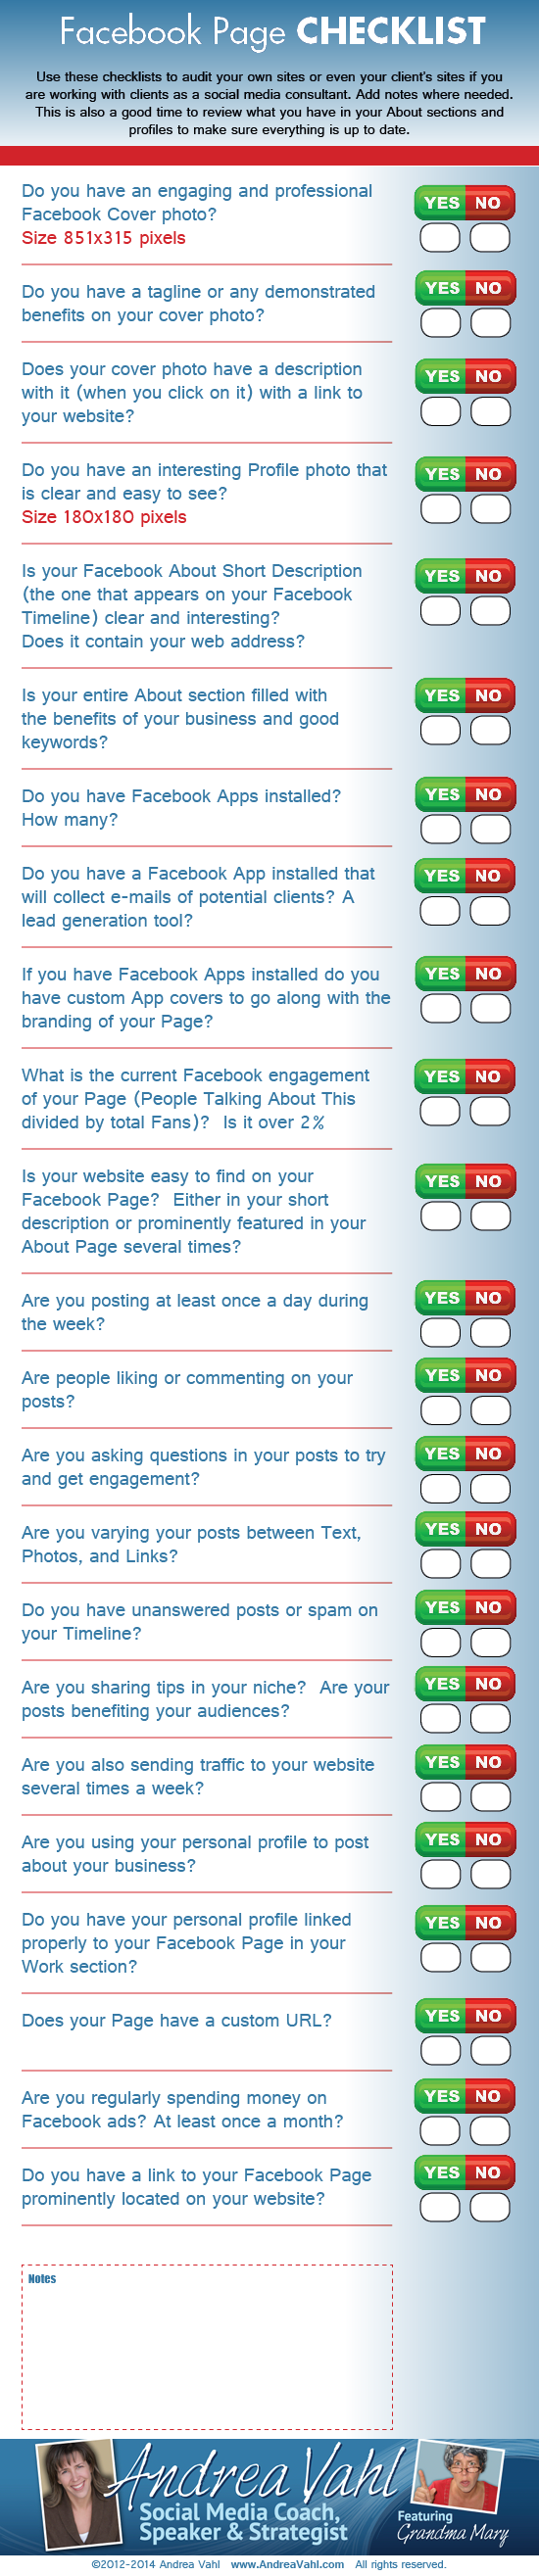 www.incometriggerconsulting.com Facebook Page Checklist. This is a great health check for your FB presence. Any questions? Go to my website to book an obligation free call with me.